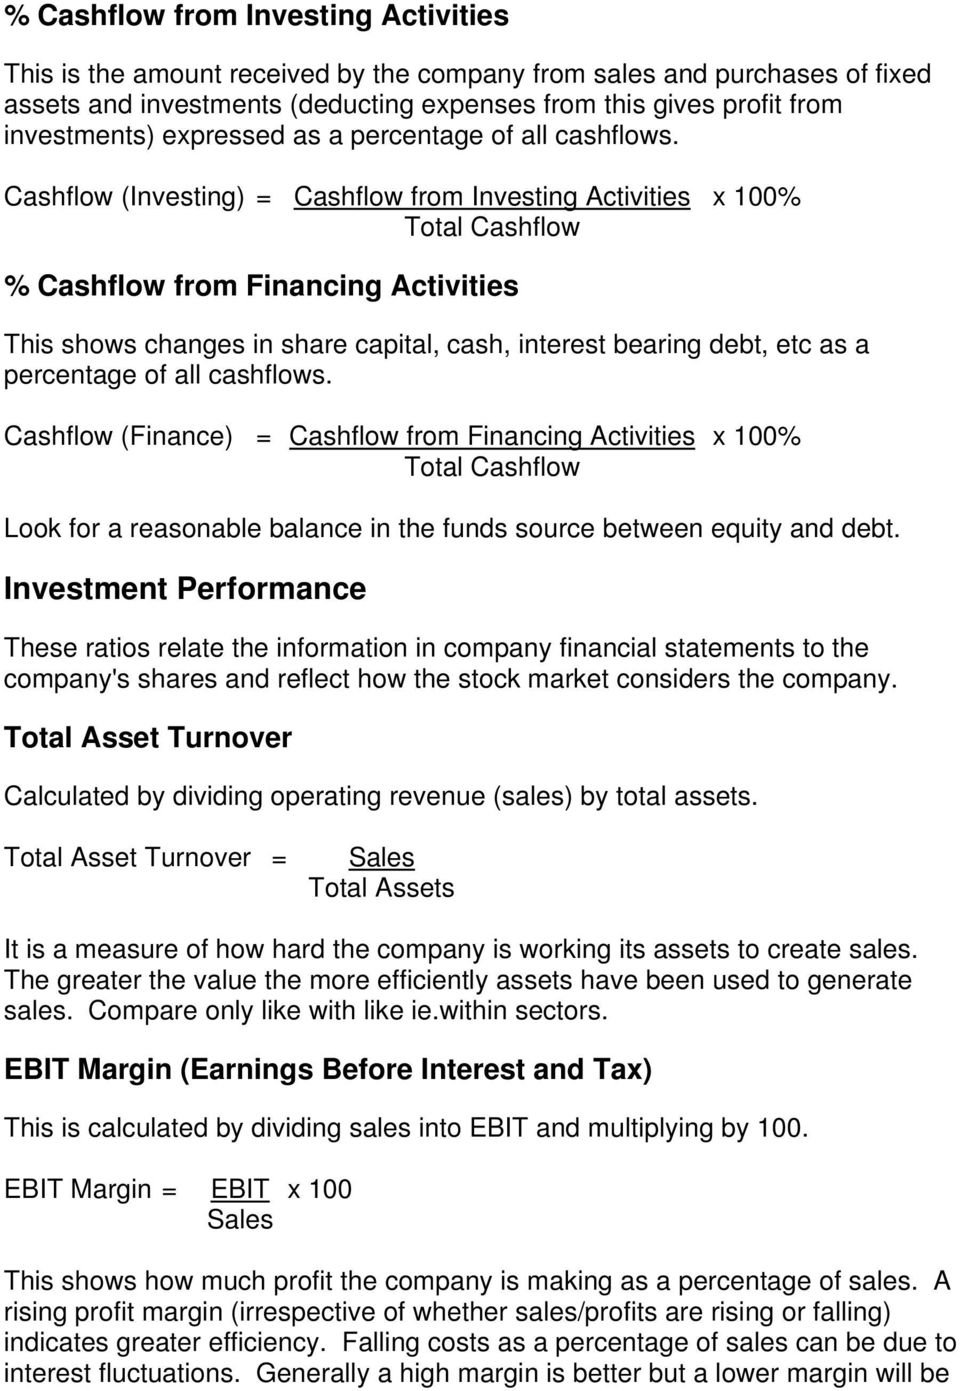 Cashflow (Investing) = Cashflow from Investing Activities x 100% Total Cashflow % Cashflow from Financing Activities This shows changes in share capital, cash, interest bearing debt, etc as a